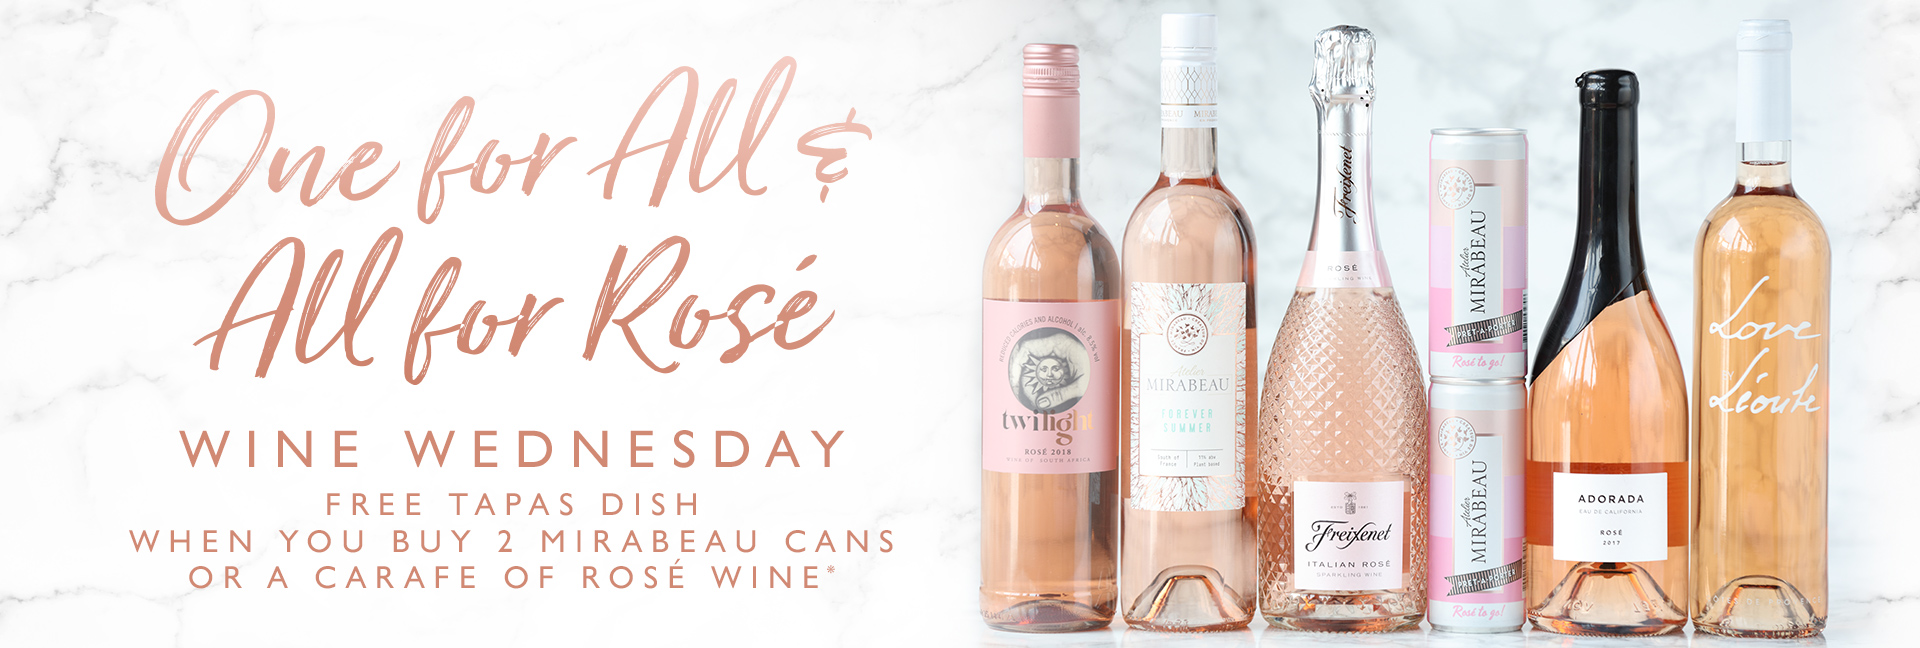 Wine Wednesday at All Bar One Newcastle